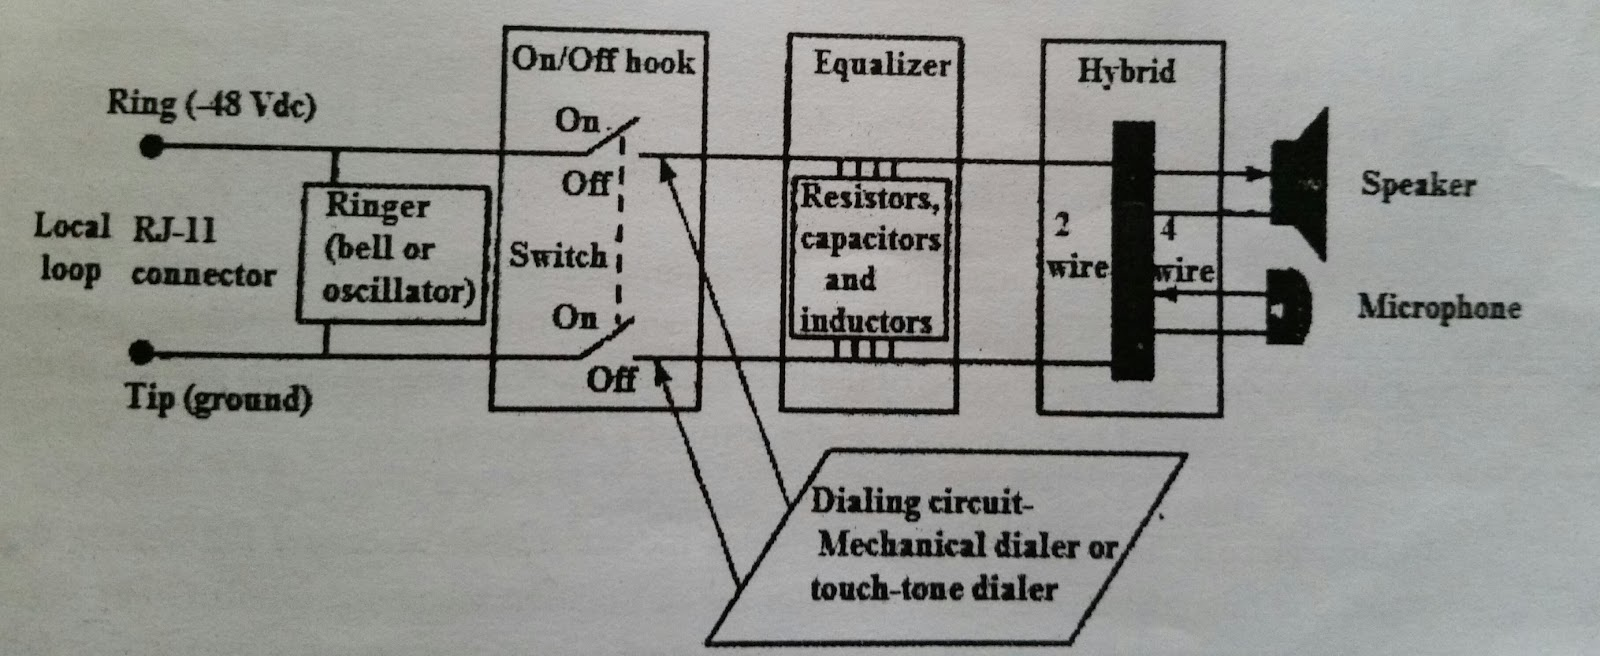 Vibgyor Telephone Circuits Functional Block Diagram Of A Standard Set